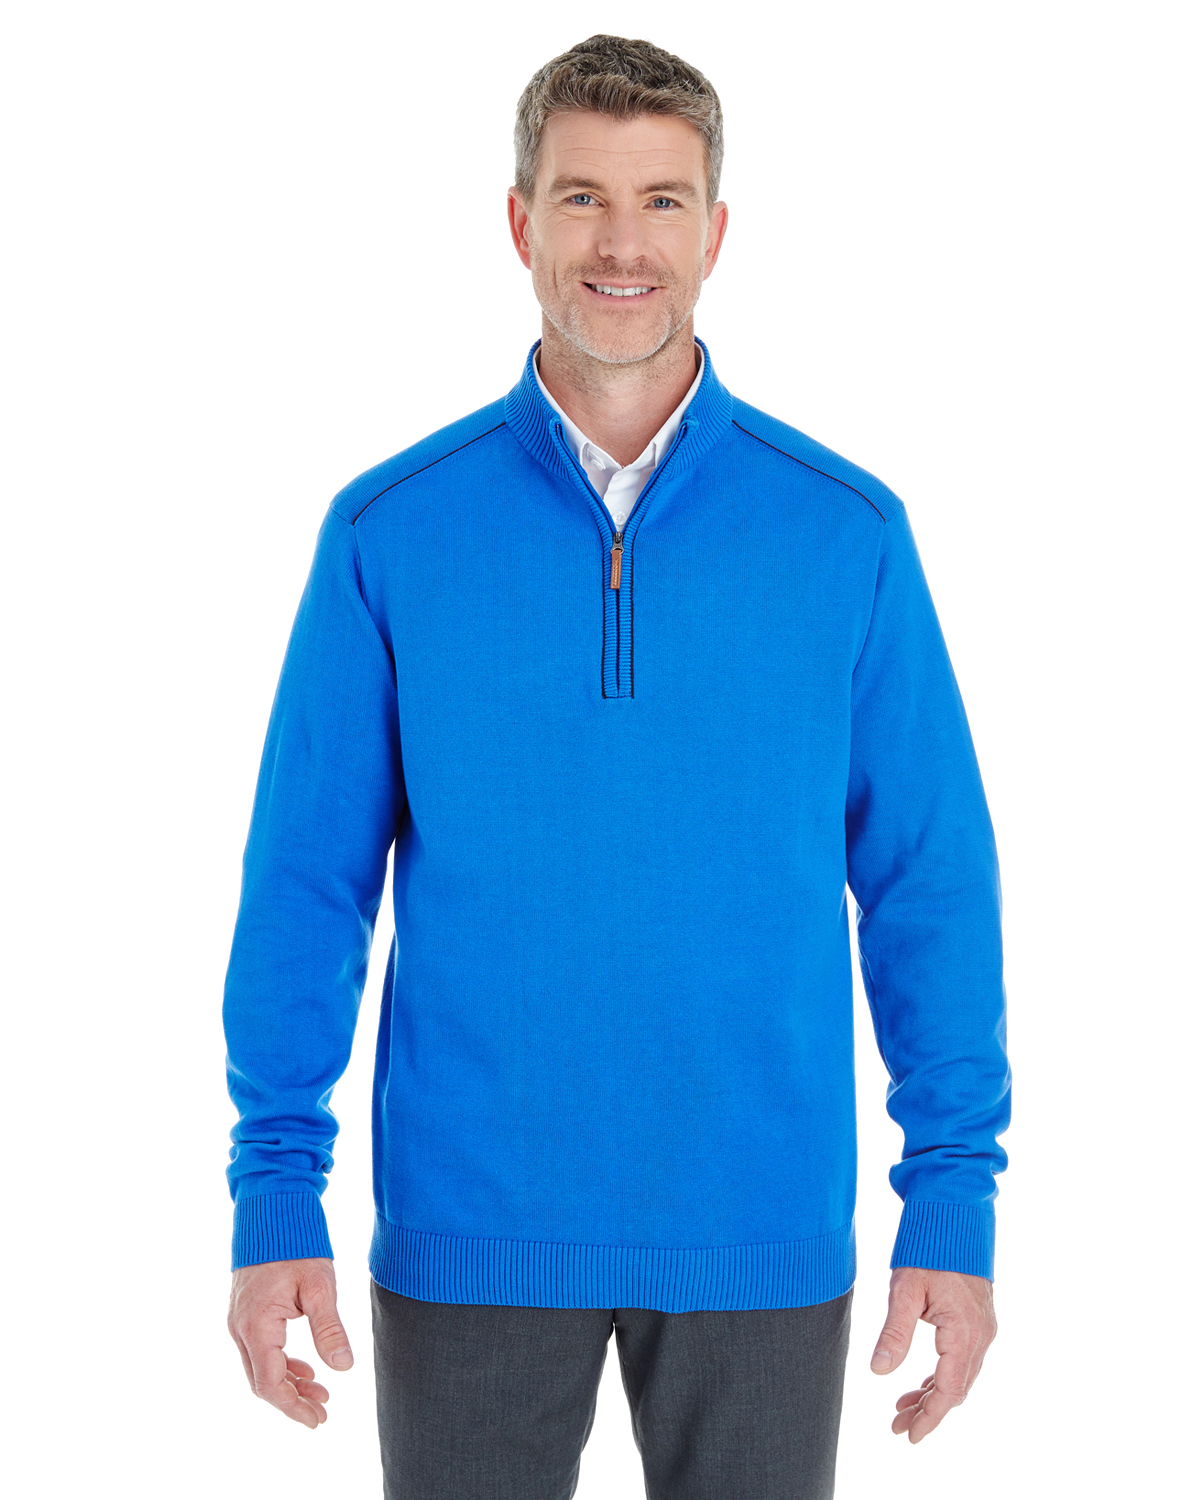 Devon & Jones - DG478 Men's Manchester Fully-Fashioned Quarter-Zip Sweater, Pensacola, Embroidery, Screen Printing, Logo Masters International